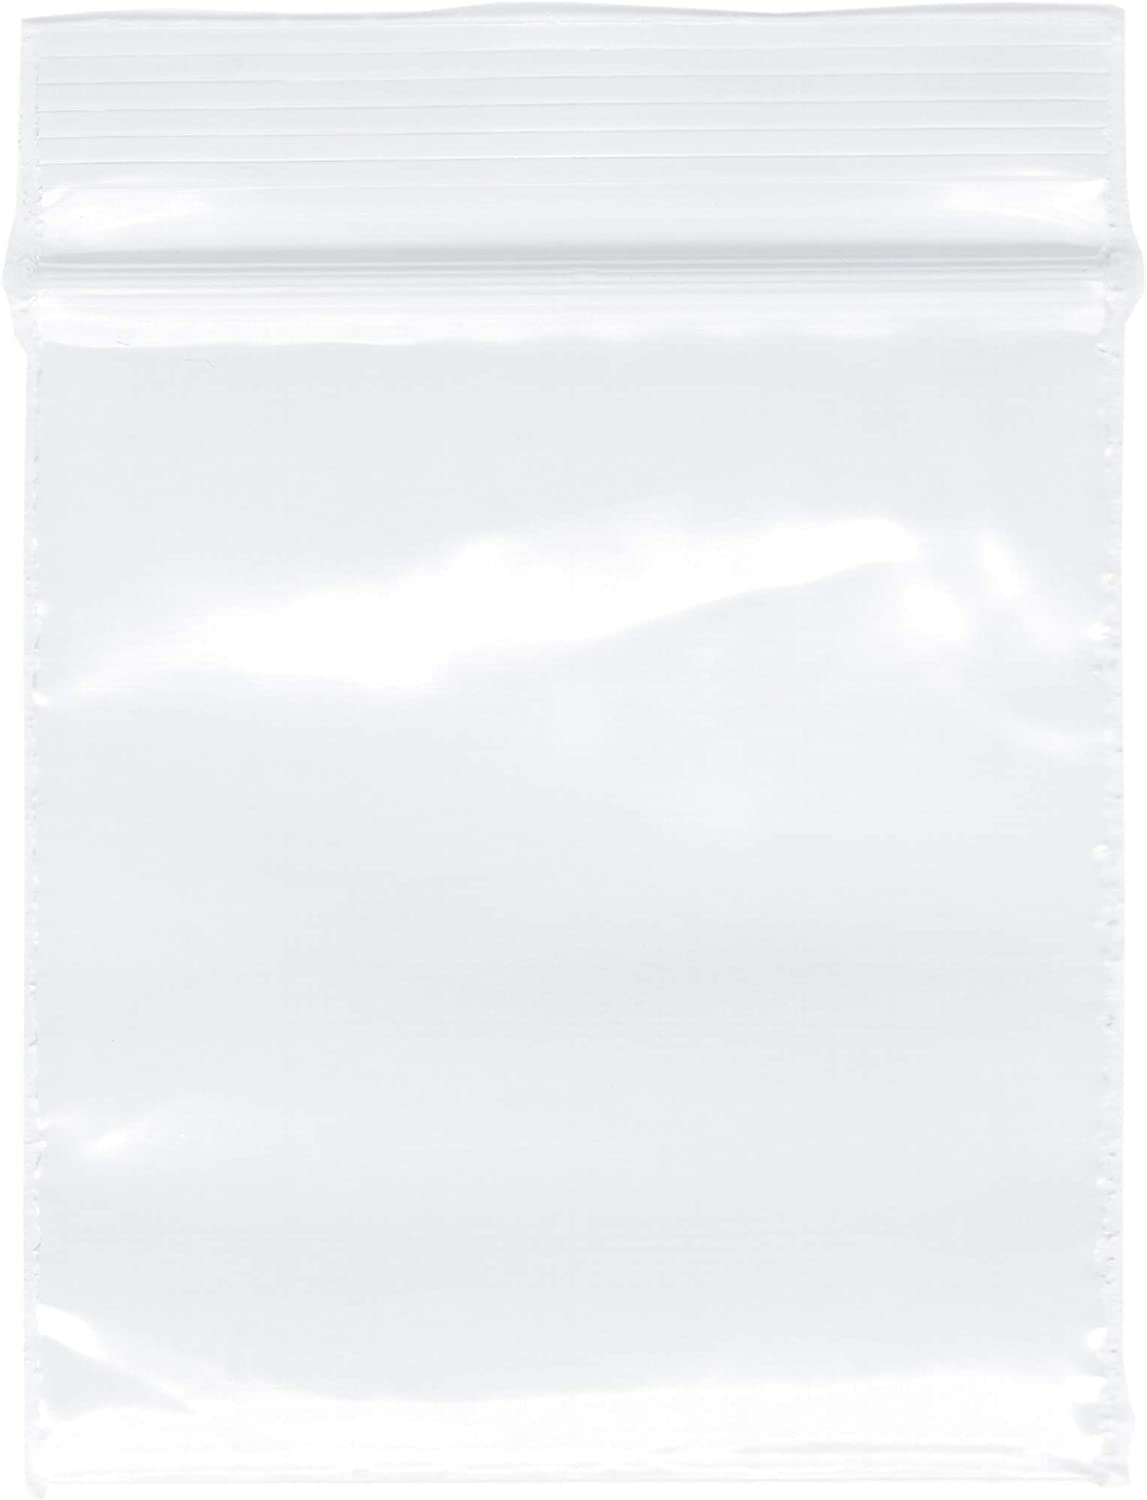 "Plymor Zipper Reclosable Plastic Bags, 2 Mil, 1.5"" x 1.5"" (Pack of 500)"